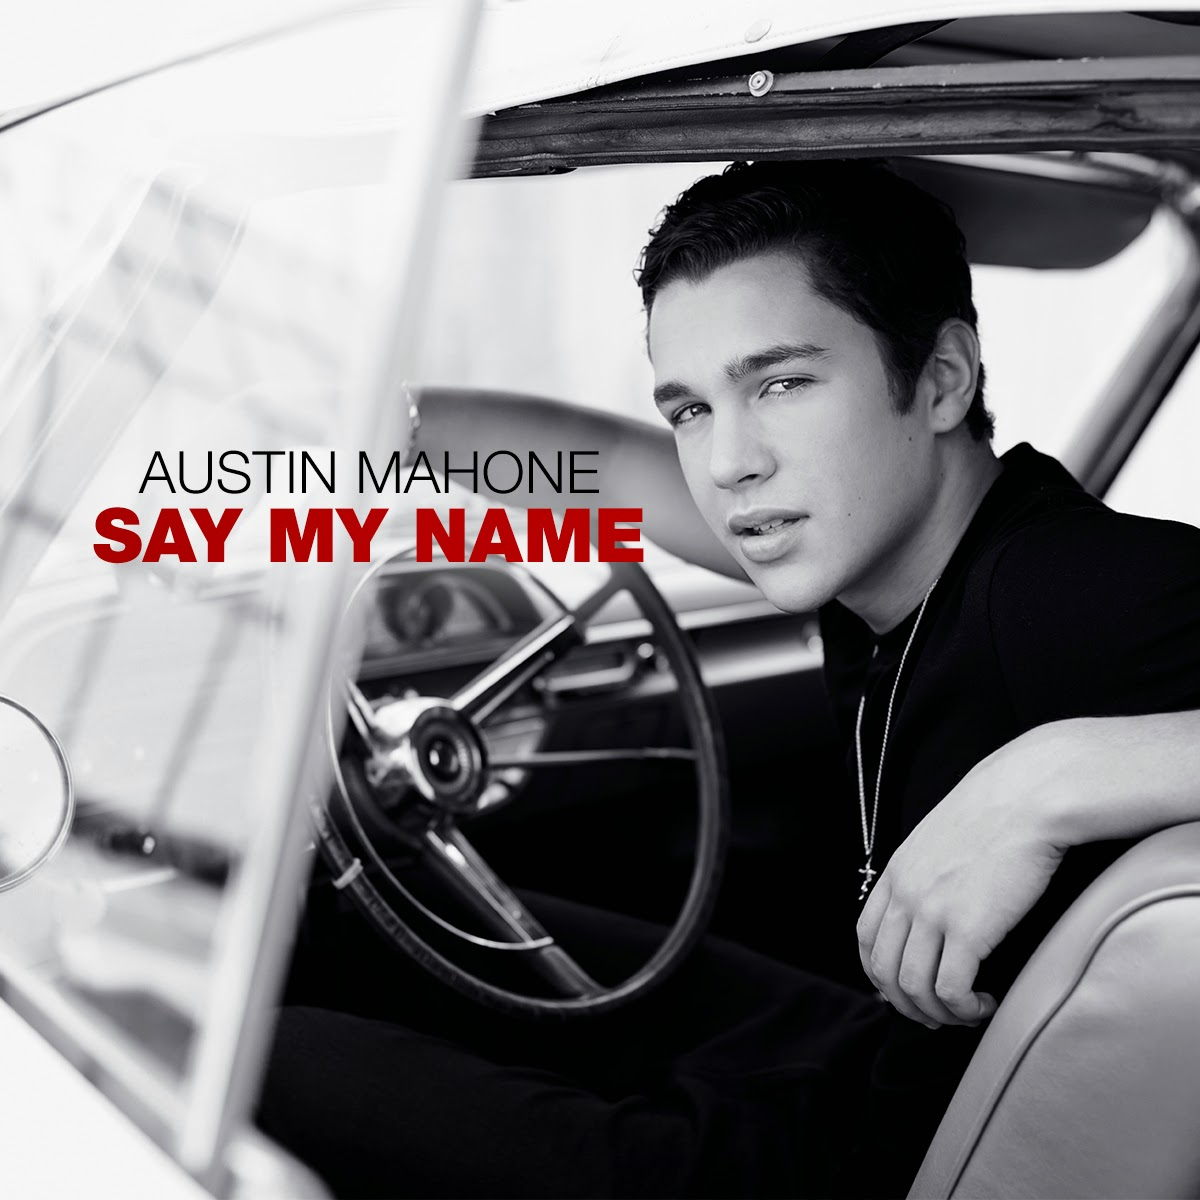 artwork austin mahone say my name m do space. Black Bedroom Furniture Sets. Home Design Ideas